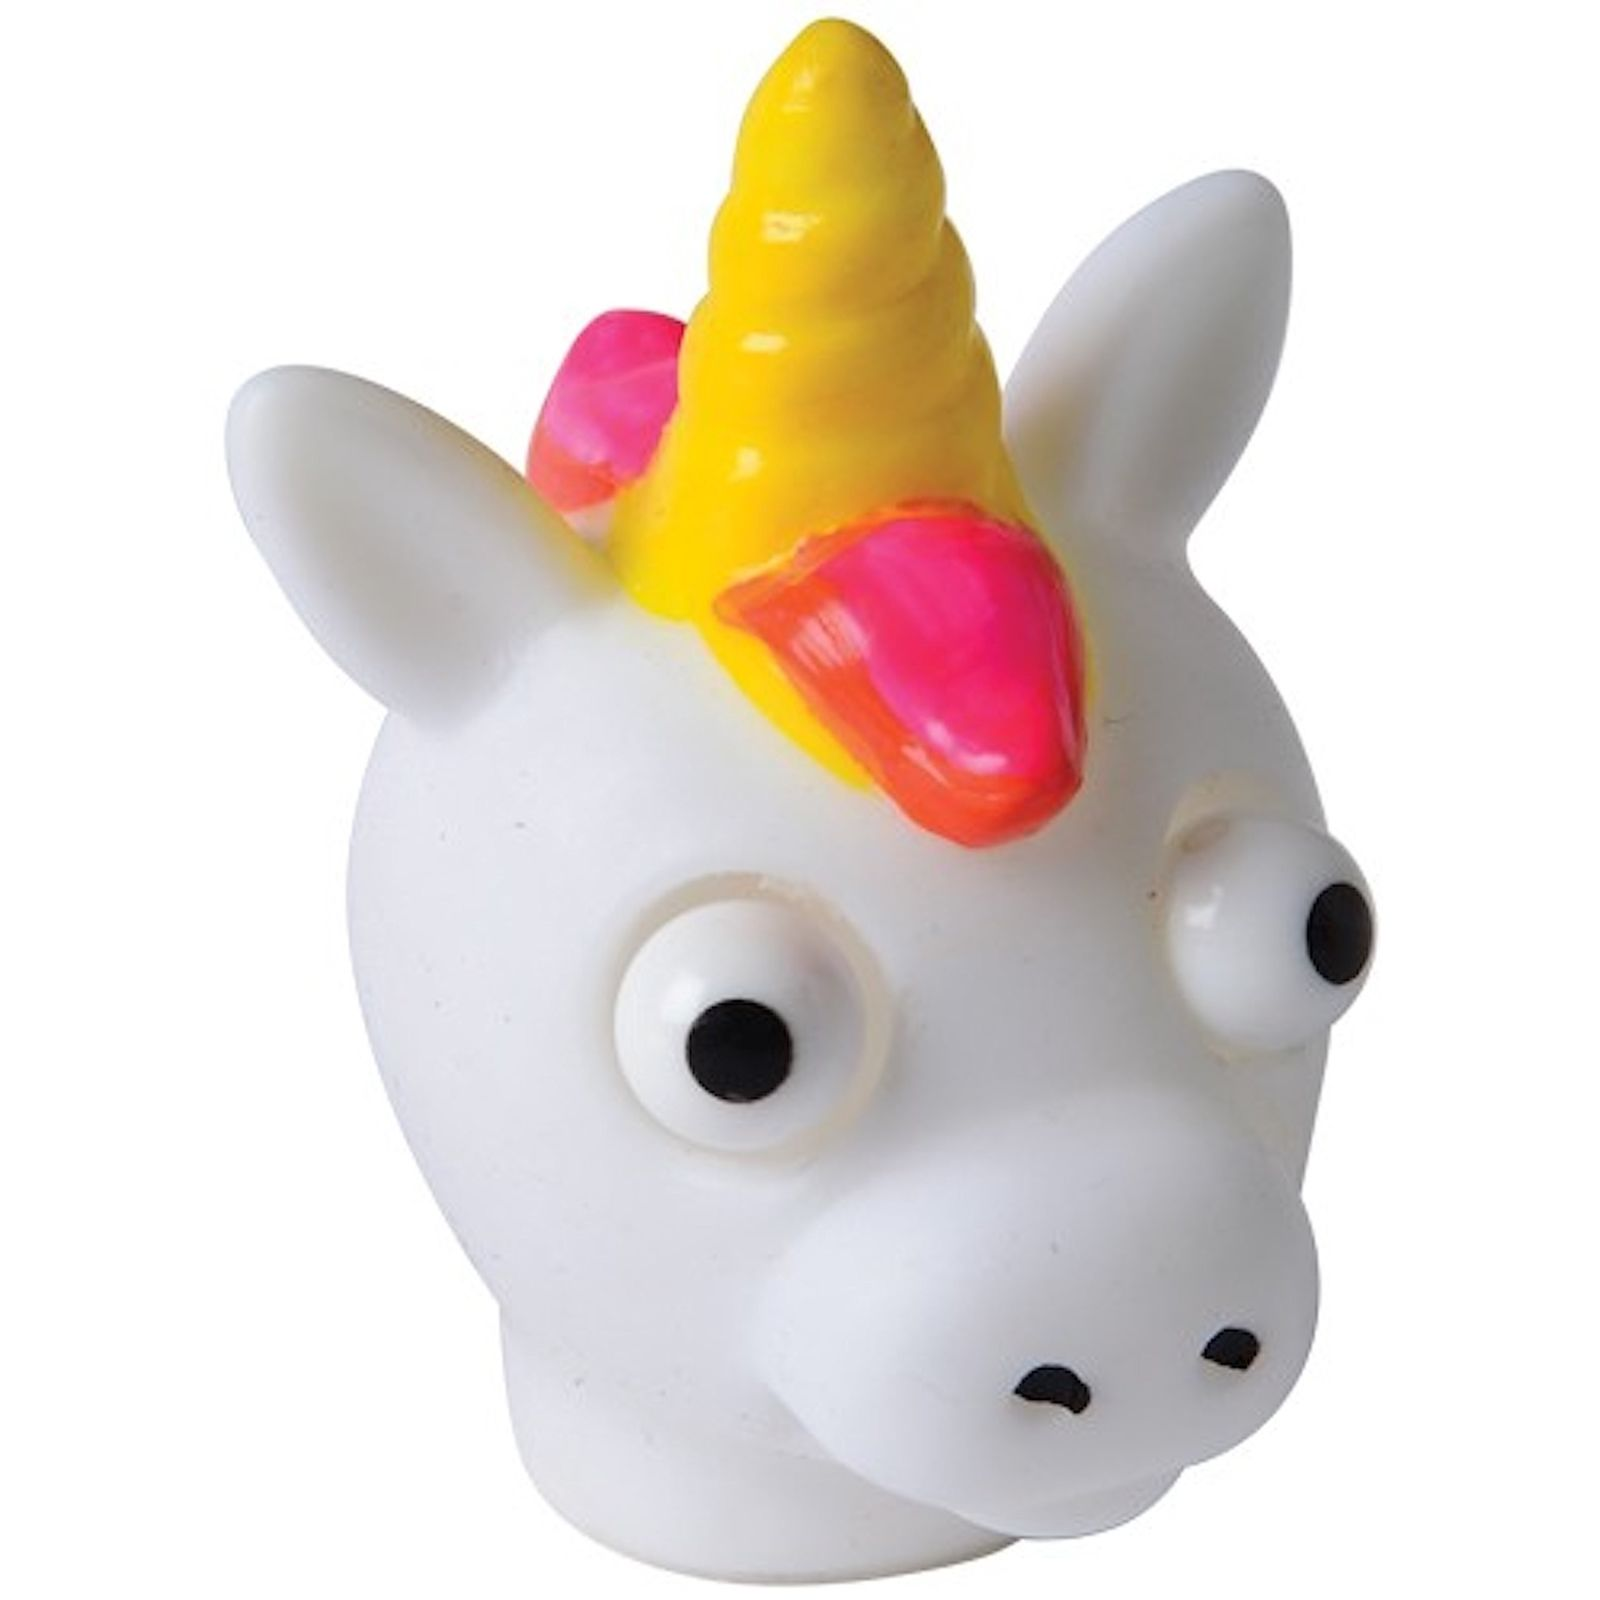 "US Toy Popping Eye Unicorns Stress Squisher 2.5"" Party Favors, White, 12 Pack"